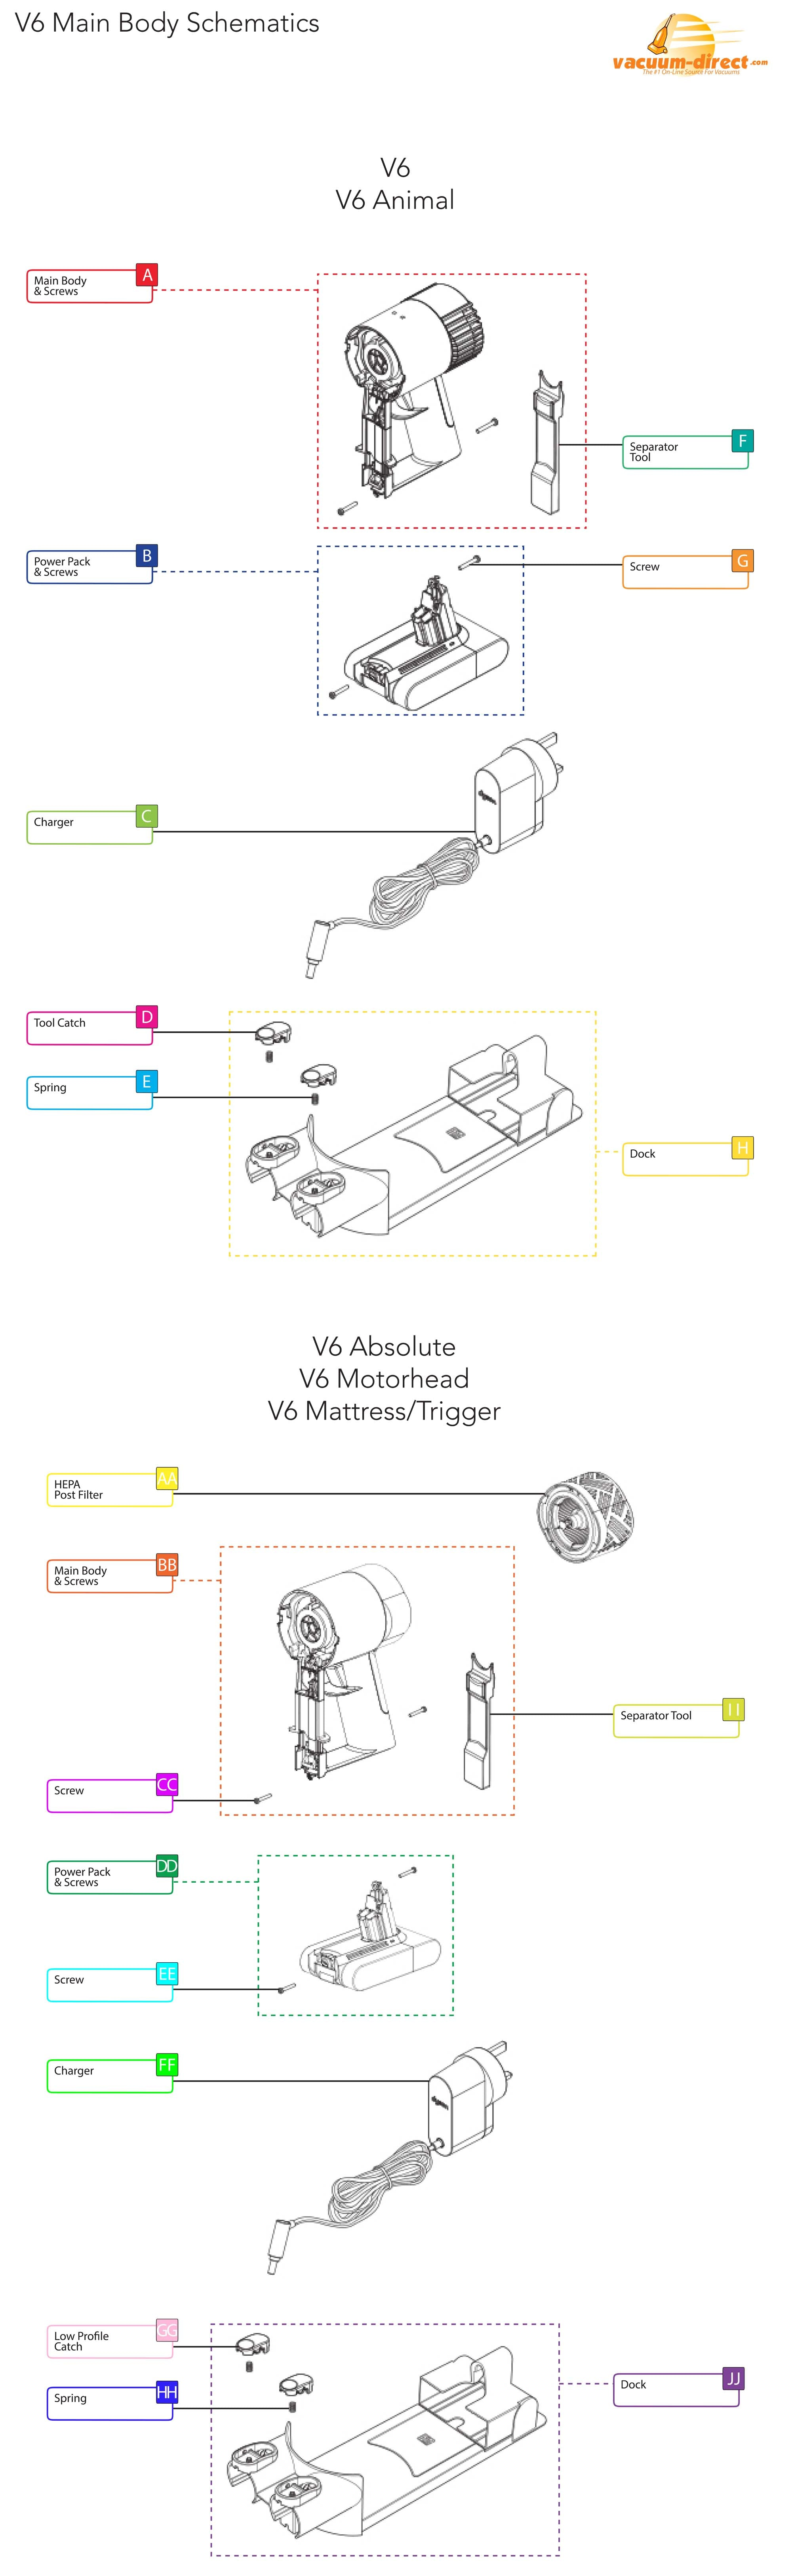 Dyson V6 Vacuum Parts Direct Body Schematic Click Here To View Larger Image